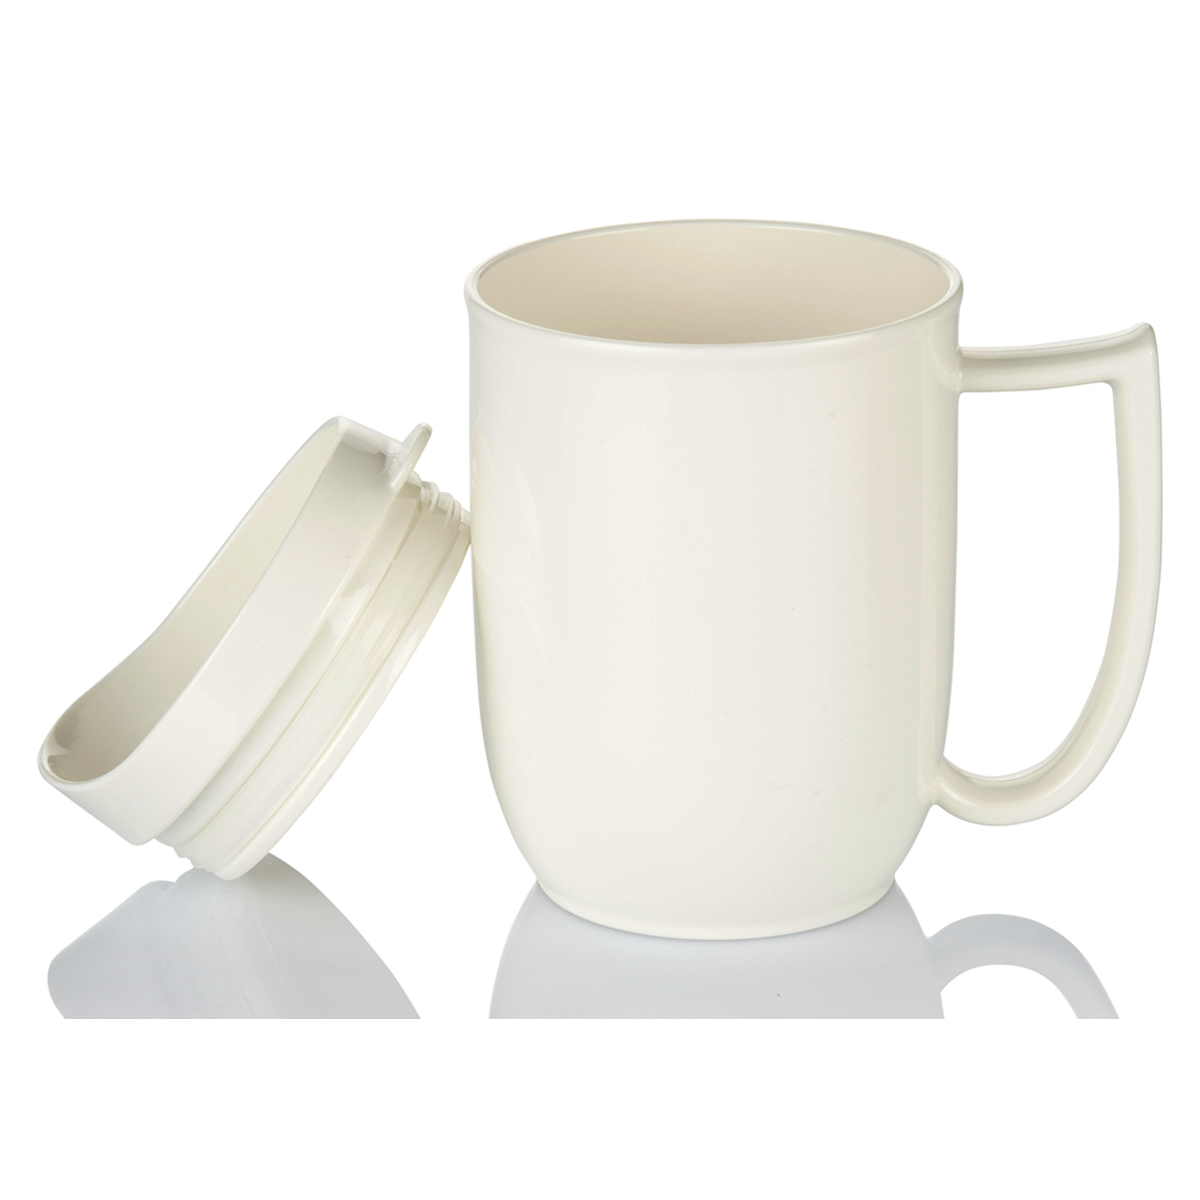 Unbreakable mug with feeder lid and large handle for dementia and alzheimer's care